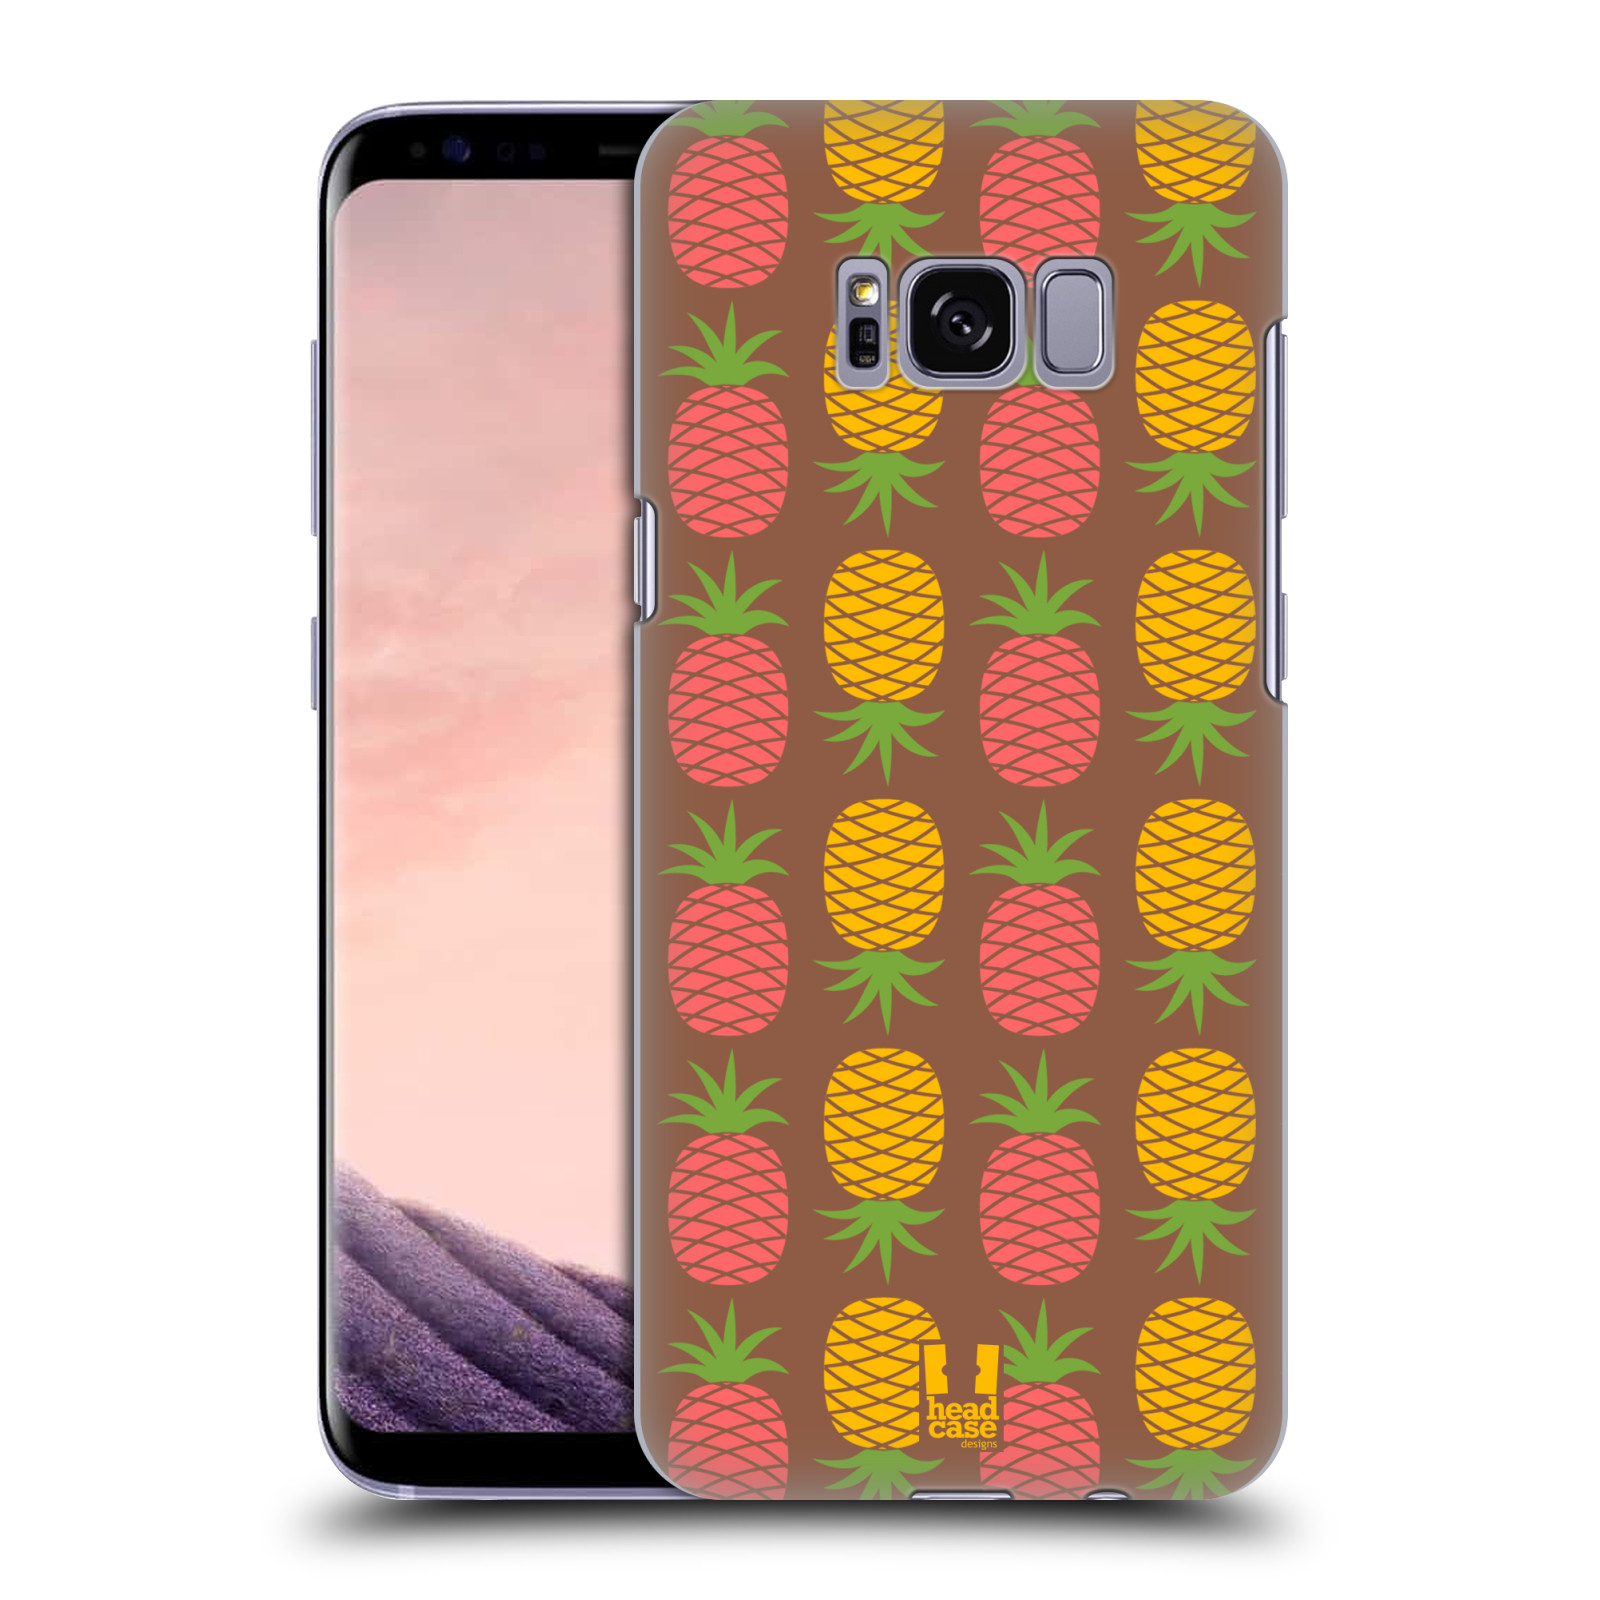 HEAD-CASE-DESIGNS-PINEAPPLE-PATTERNS-HARD-BACK-CASE-FOR-SAMSUNG-GALAXY-S8